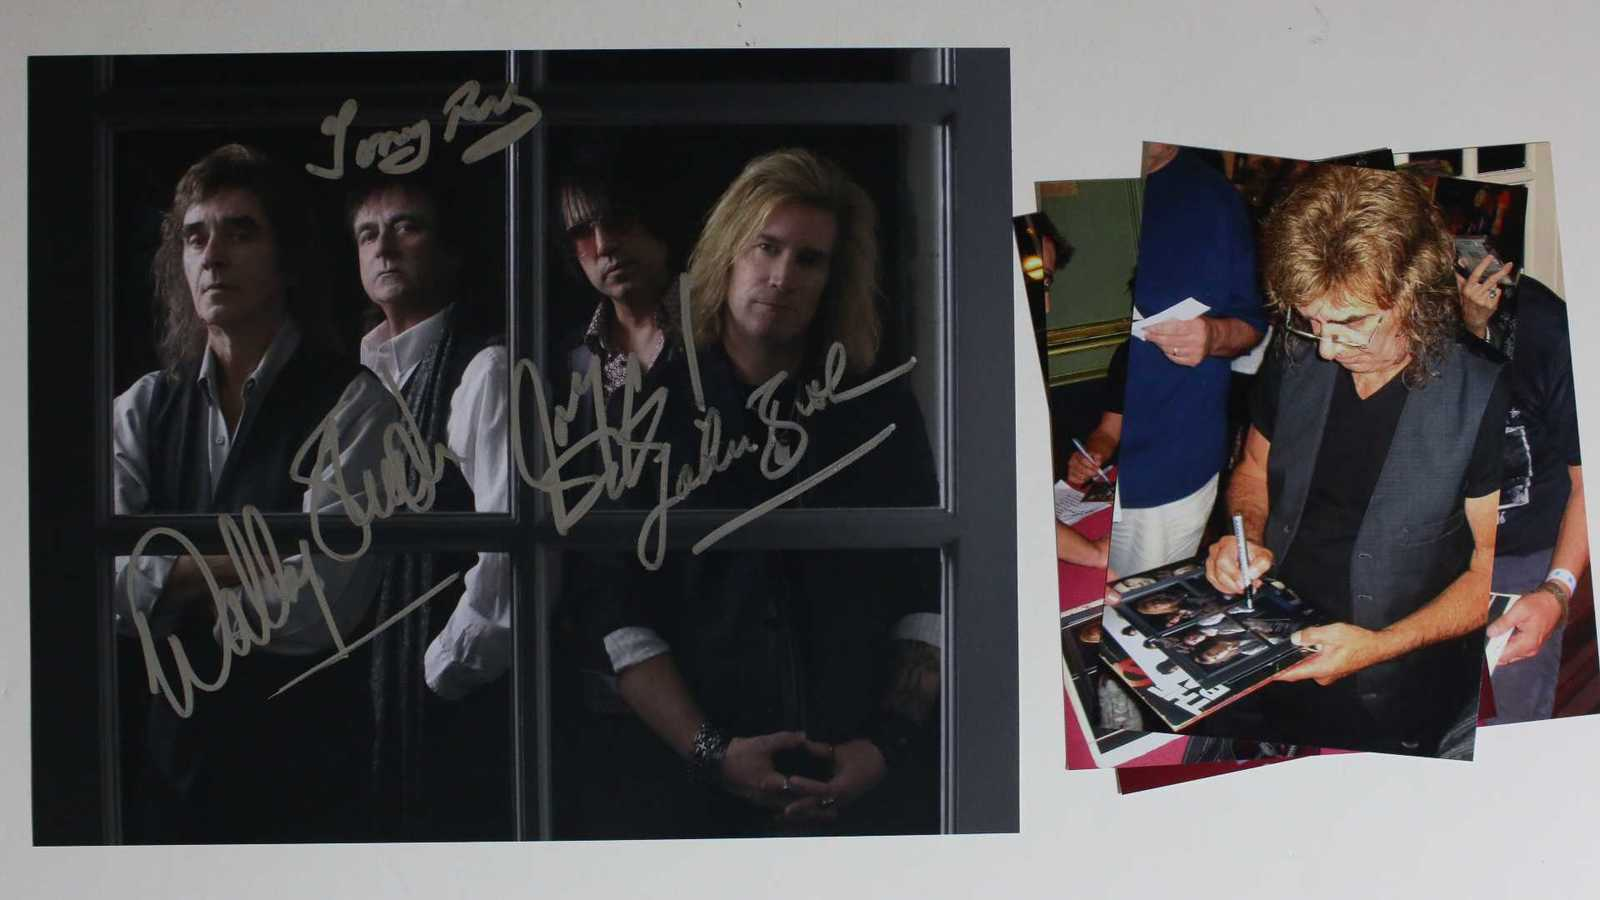 Primary image for The Babys Band Signed Autographed Glossy 8x10 Photo w/ Proof Photos